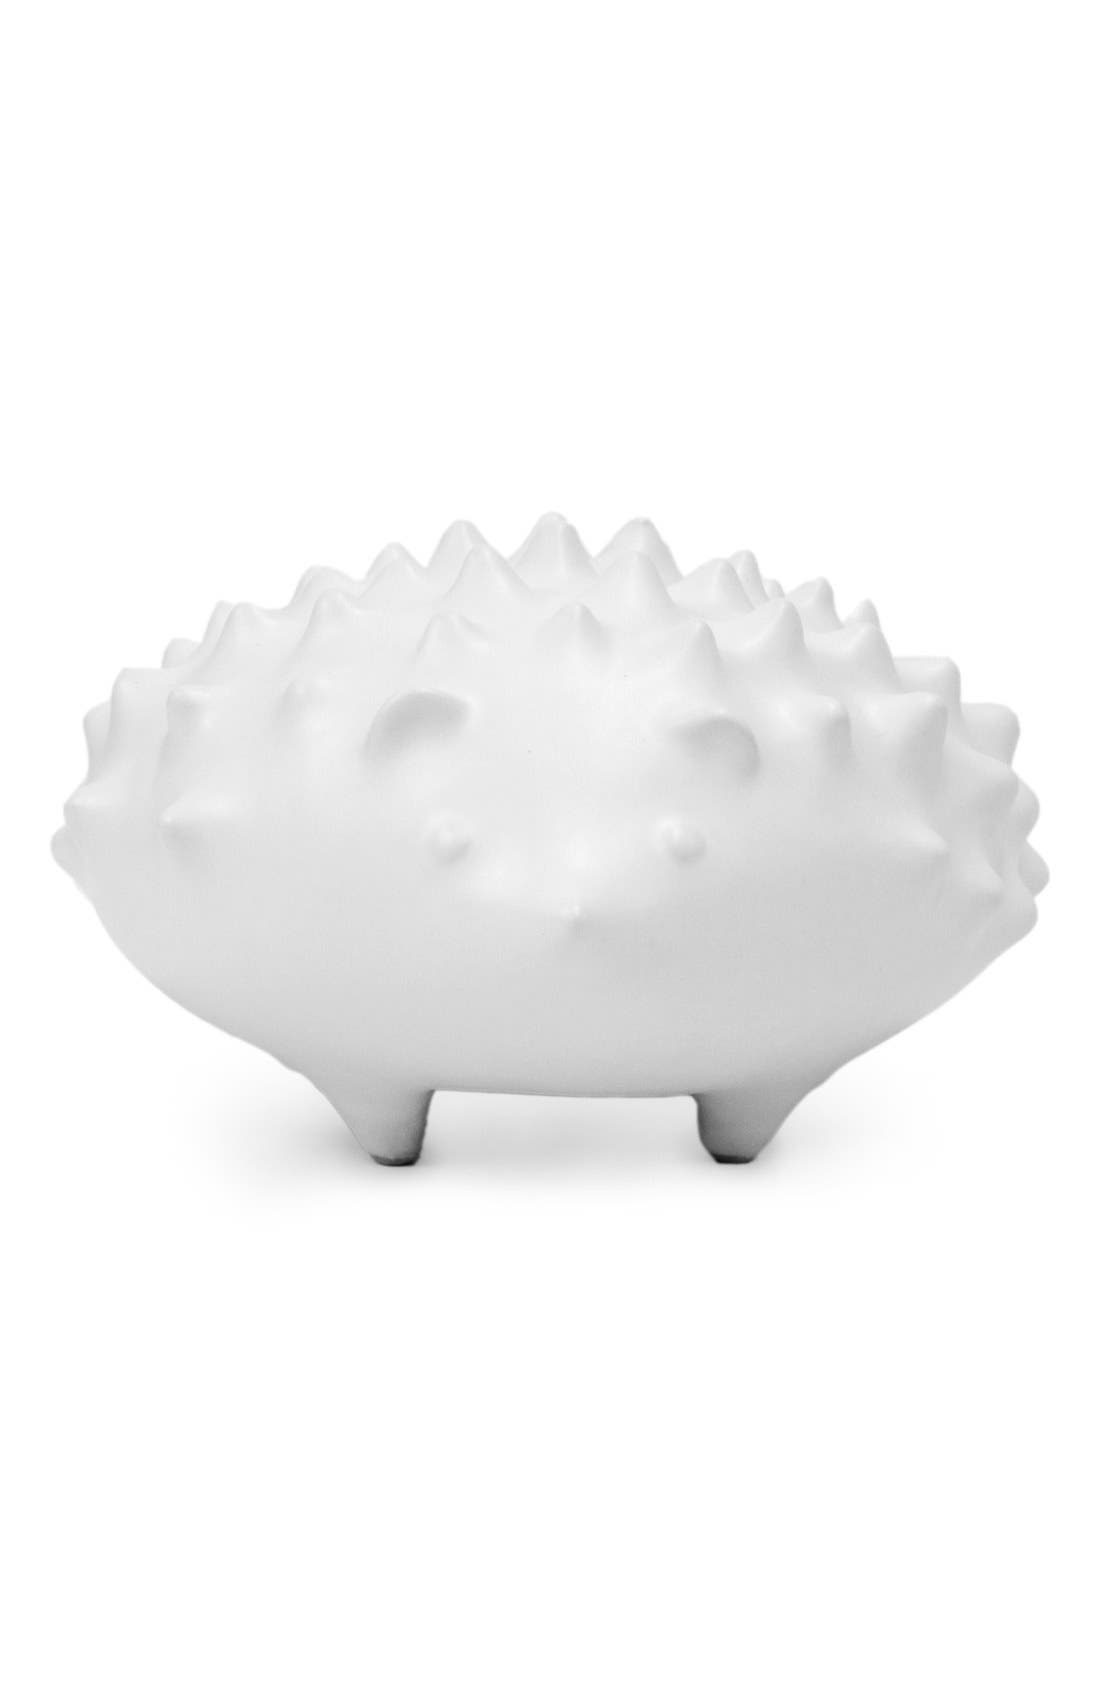 Alternate Image 1 Selected - Jonathan Adler 'Hedgehog' Porcelain Sculpture